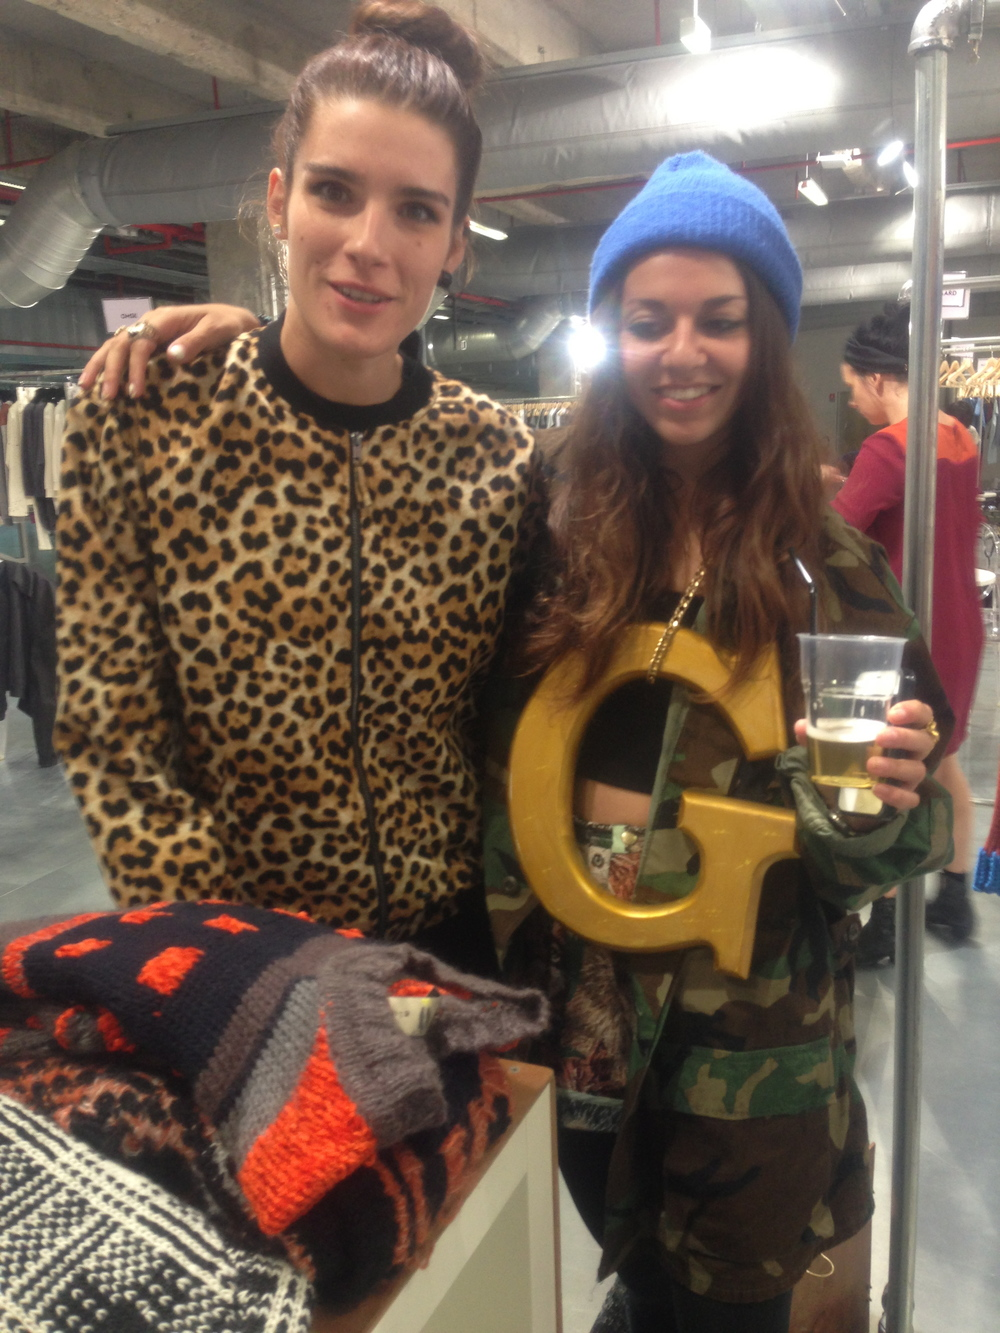 Giulia, of Farewell Footwear and our very own Giuliana, doing what she does best.